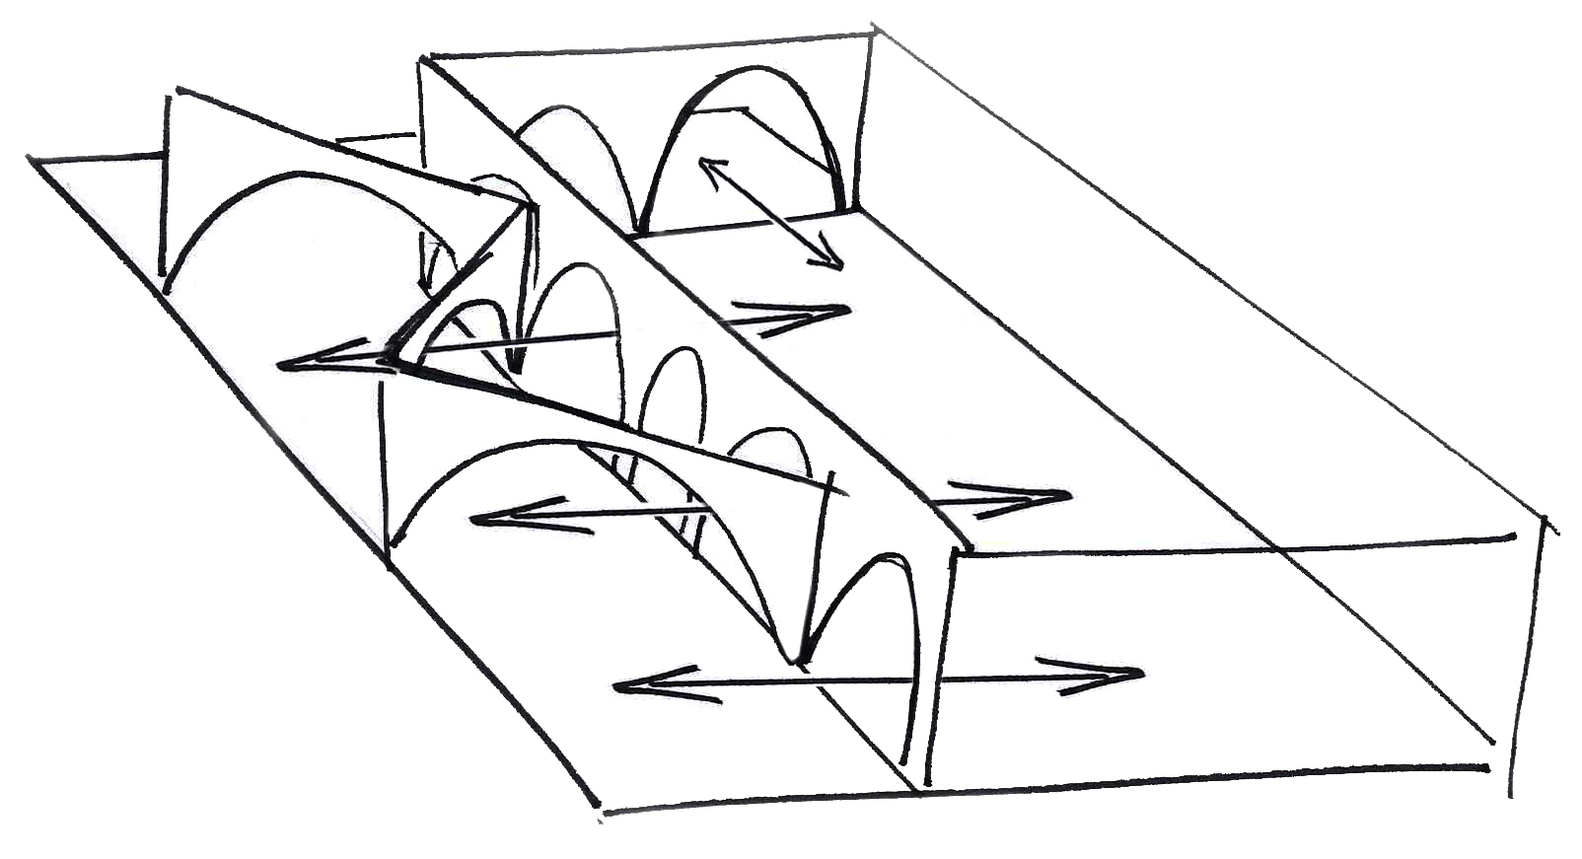 Courtyard_sketch_diagram